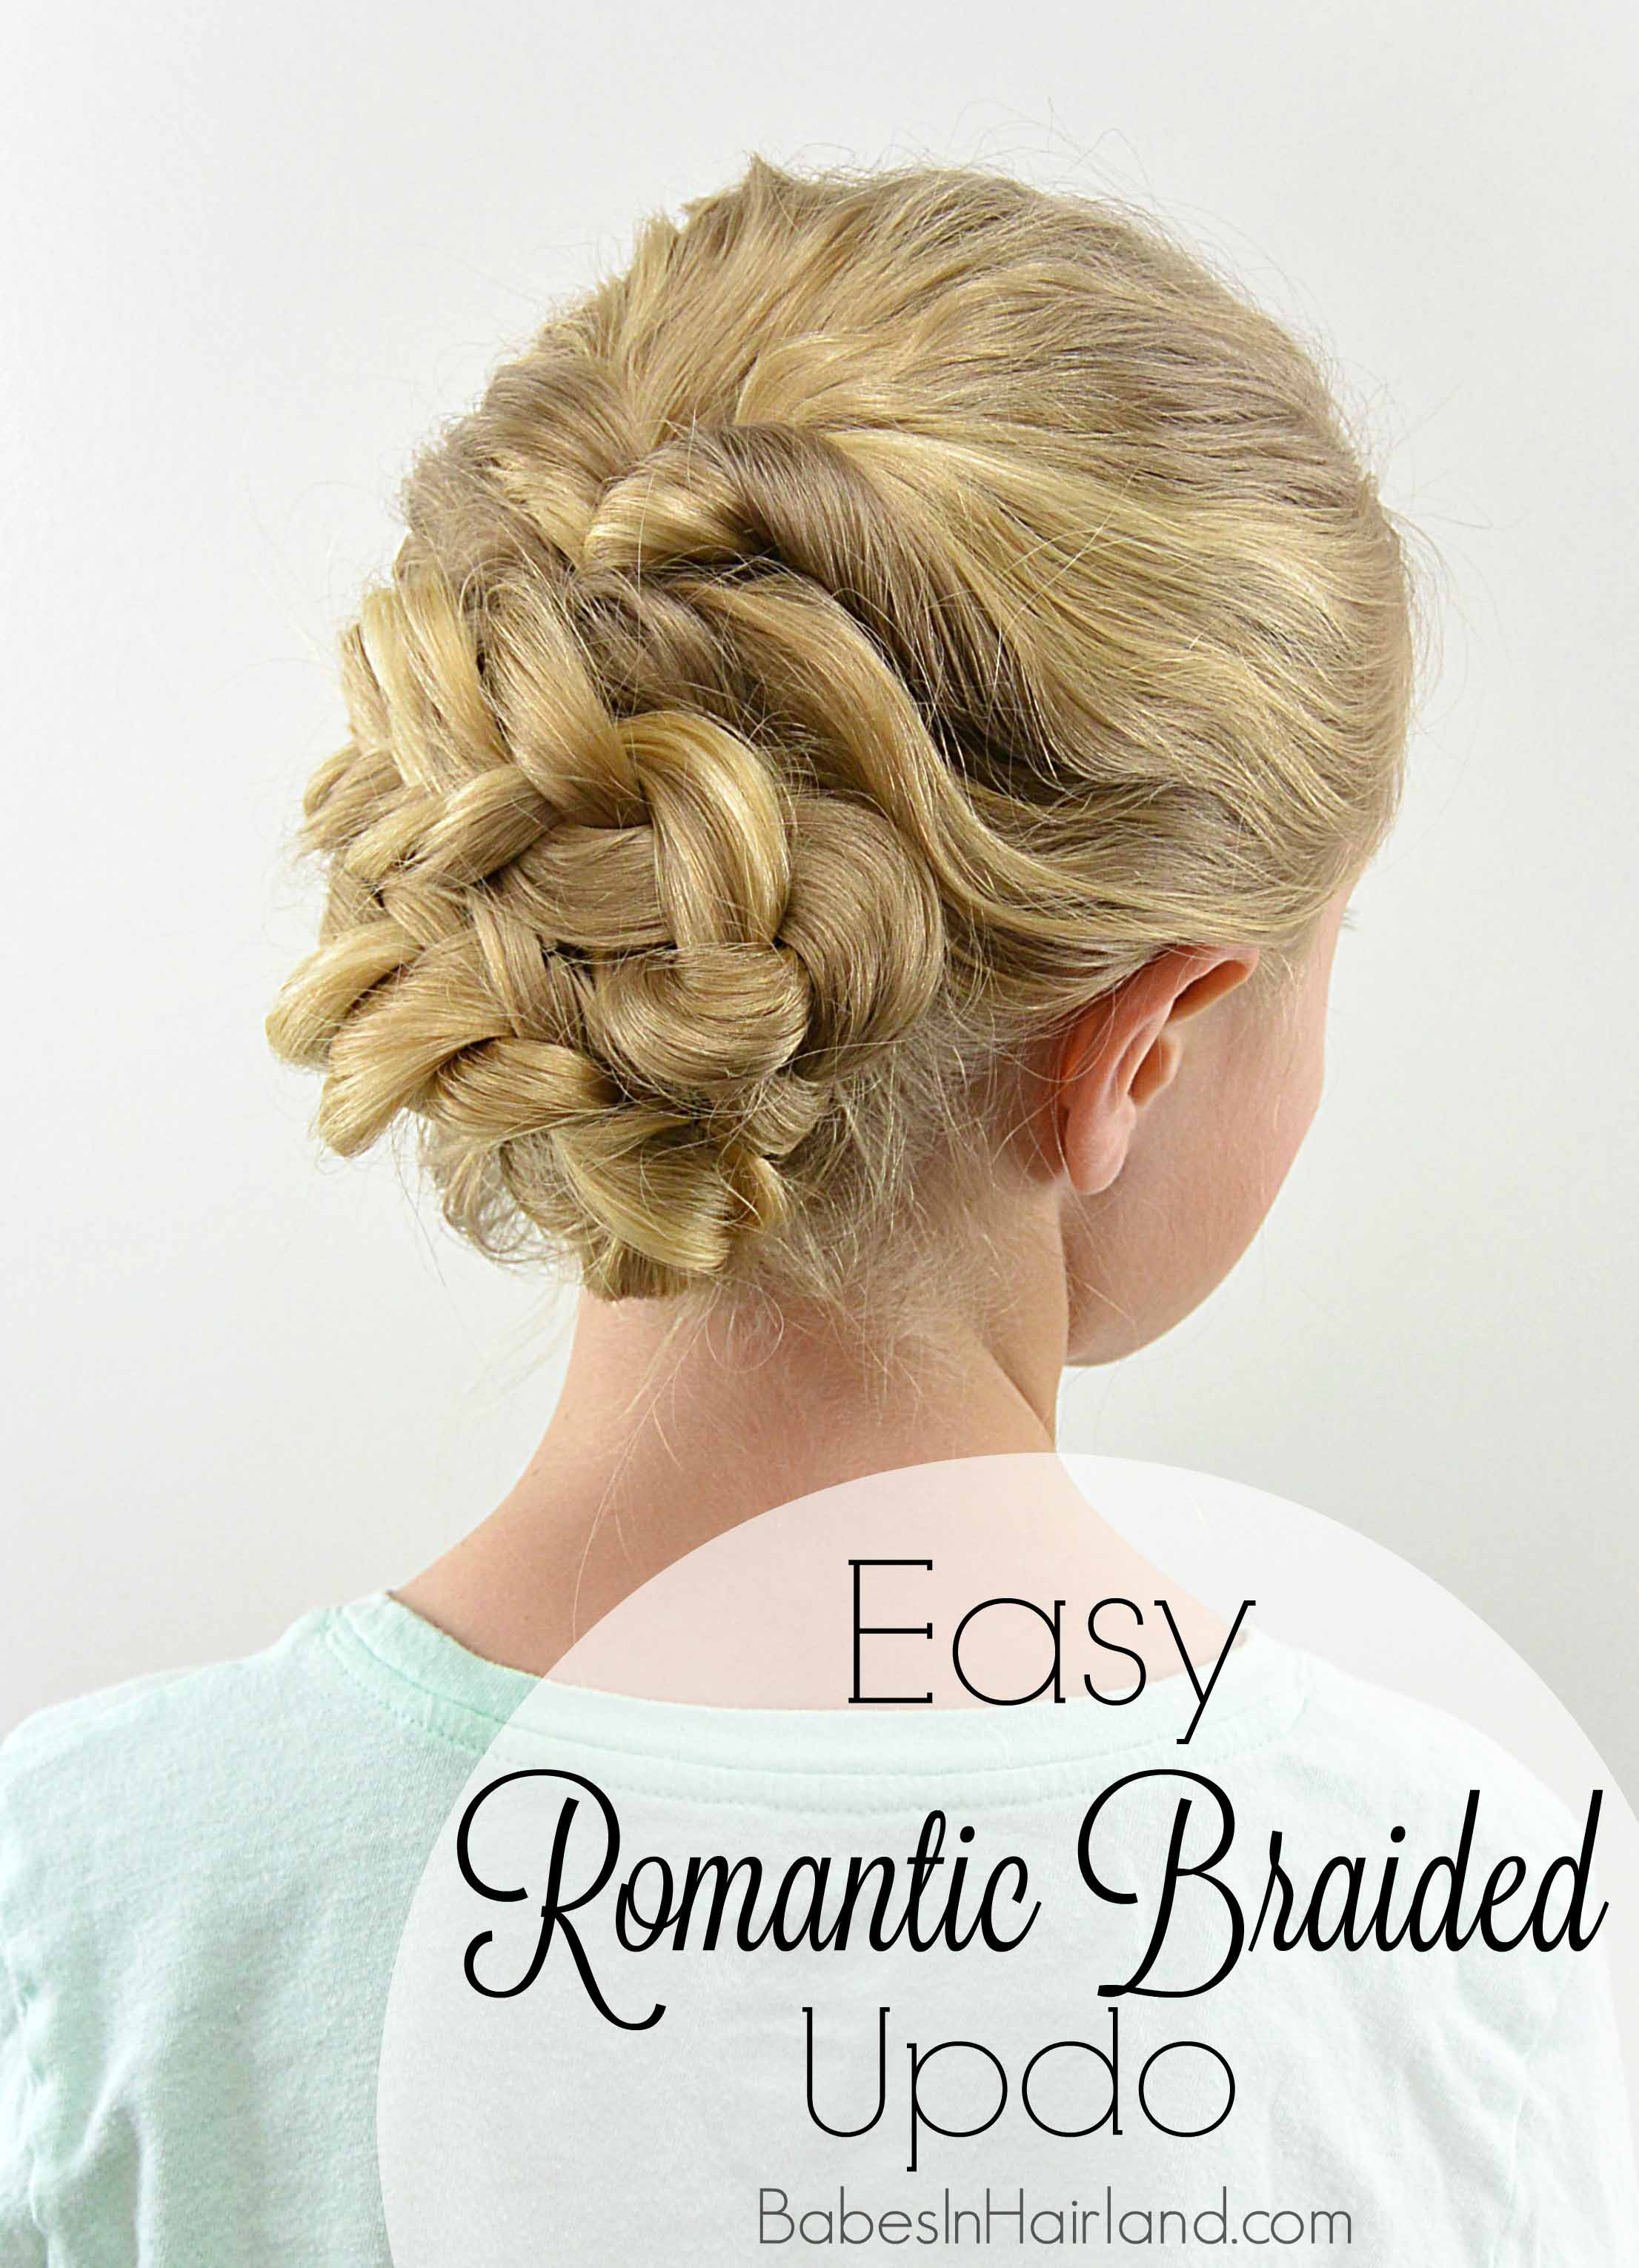 Easy Romantic Braided Updo , Babes In Hairland